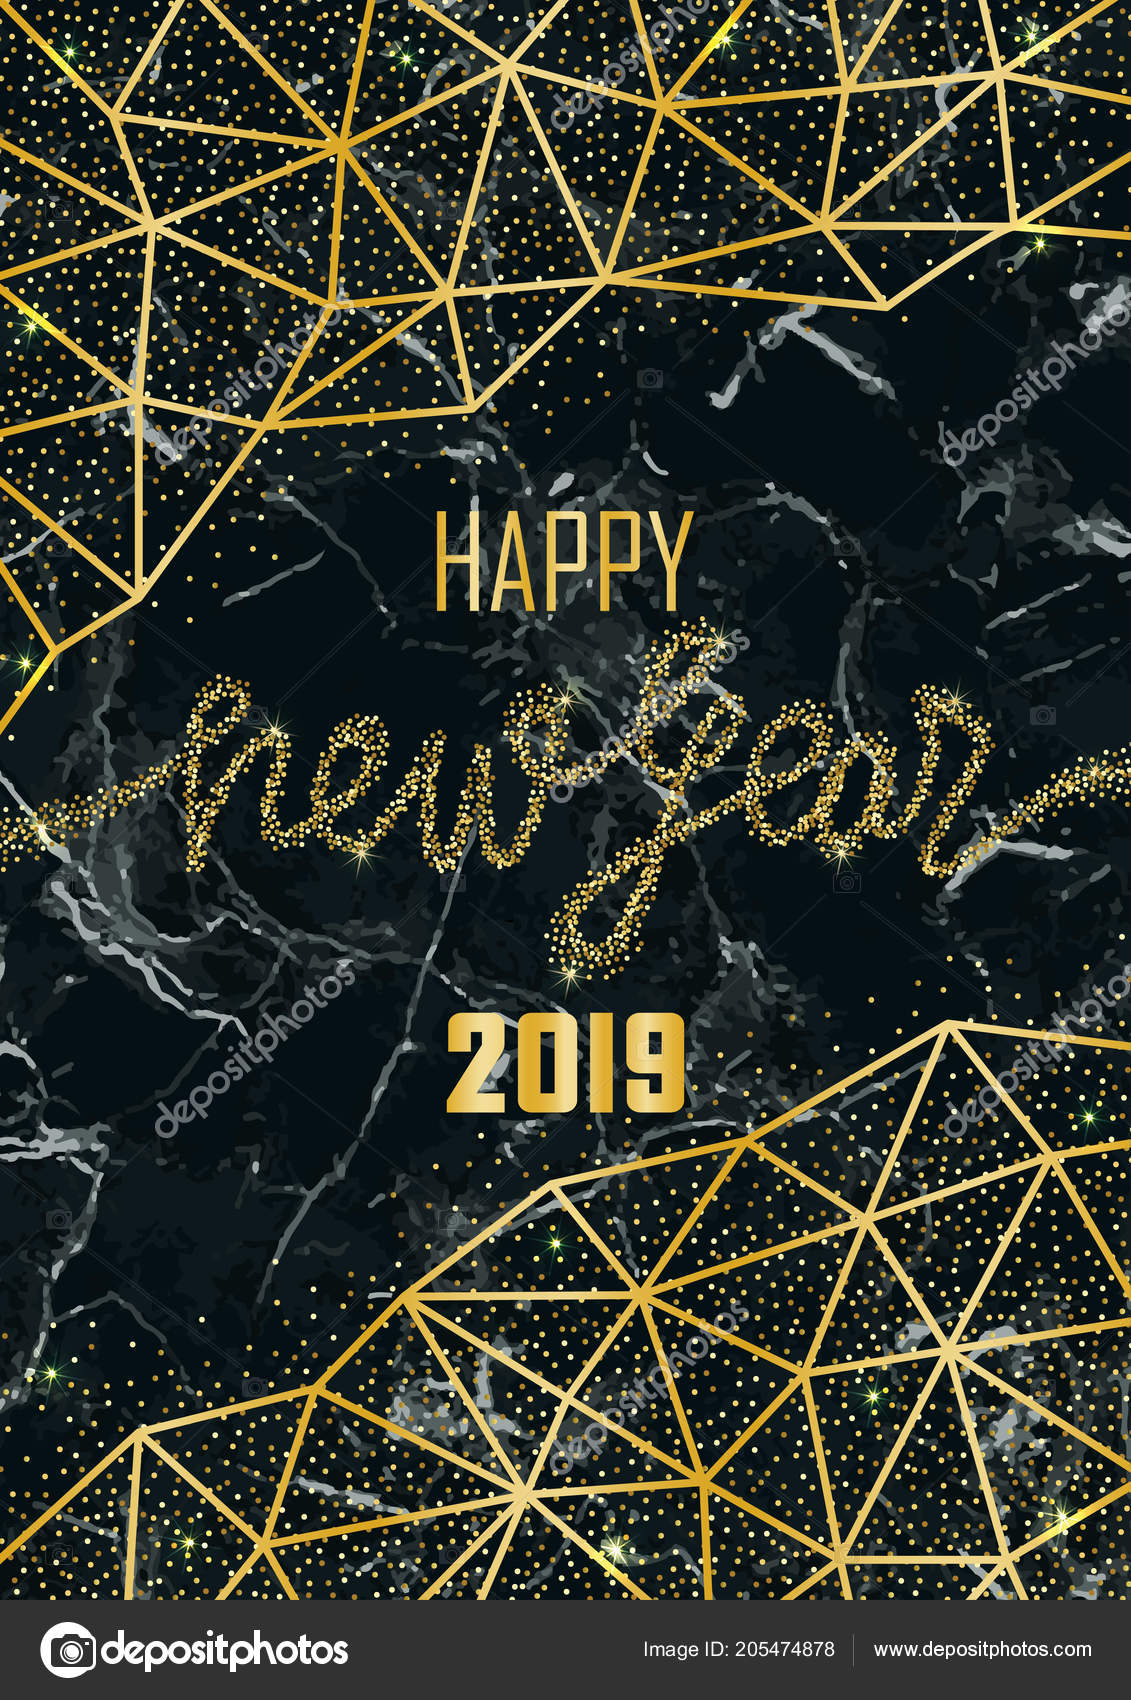 e65a25f0e58d Luxury golden Happy New Year 2019 on black marble background. Gold glitter  congratulation frame with geometric lines. A4 Template with lettering for  ...